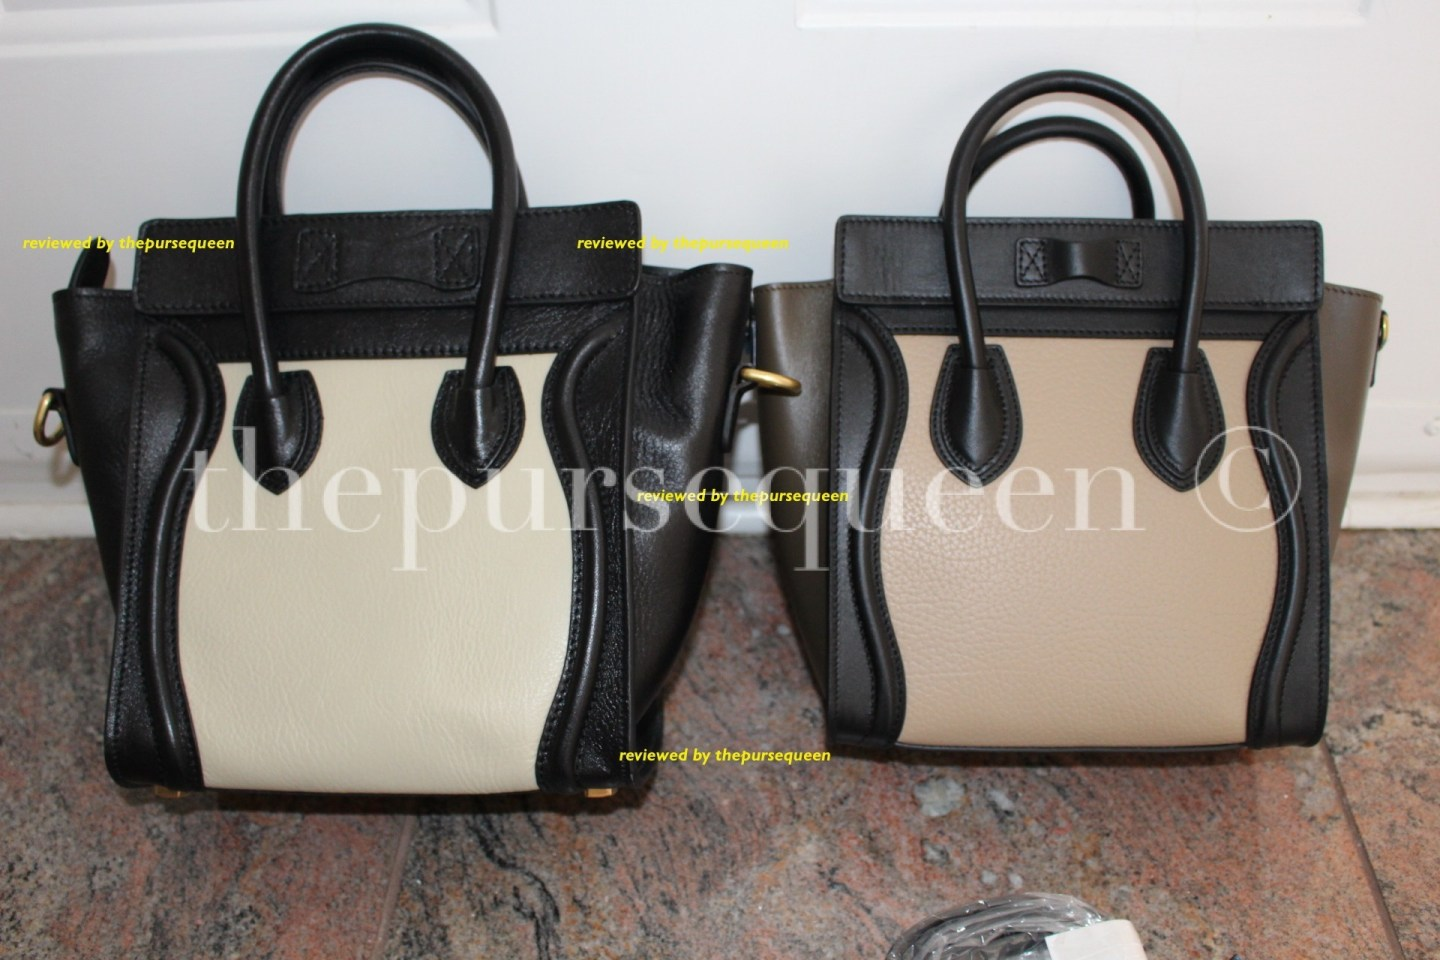 celine nano side by side comparison #celine #nano #tricolor #authentic #real #fake #replica